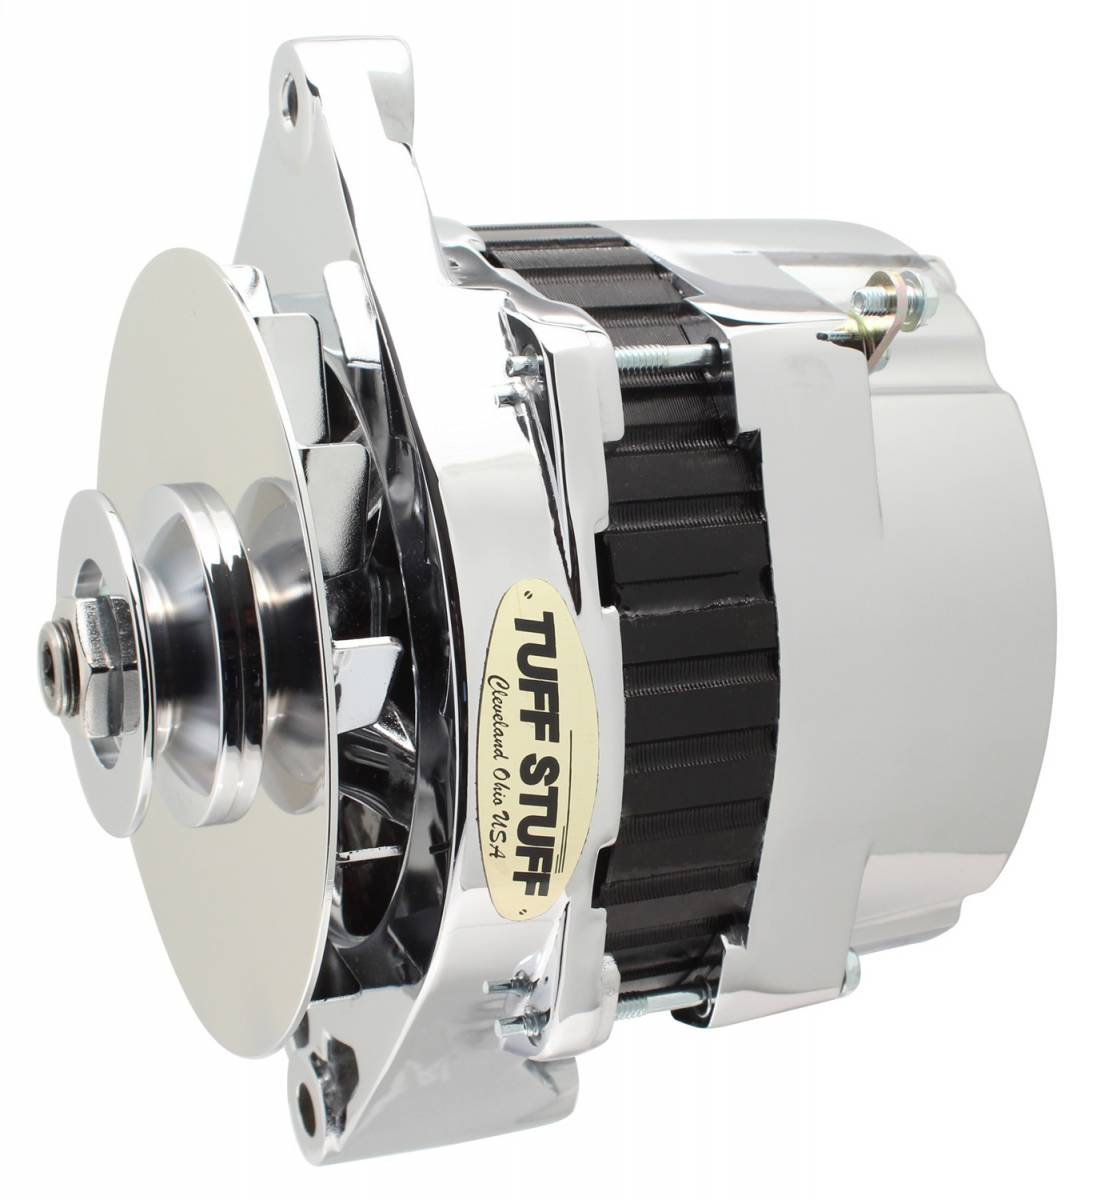 Tuff Stuff Performance - Alternator 250 High AMP Incl. Pigtail/OEM Wiring V Groove Pulley Aluminum Polished 7290NEP